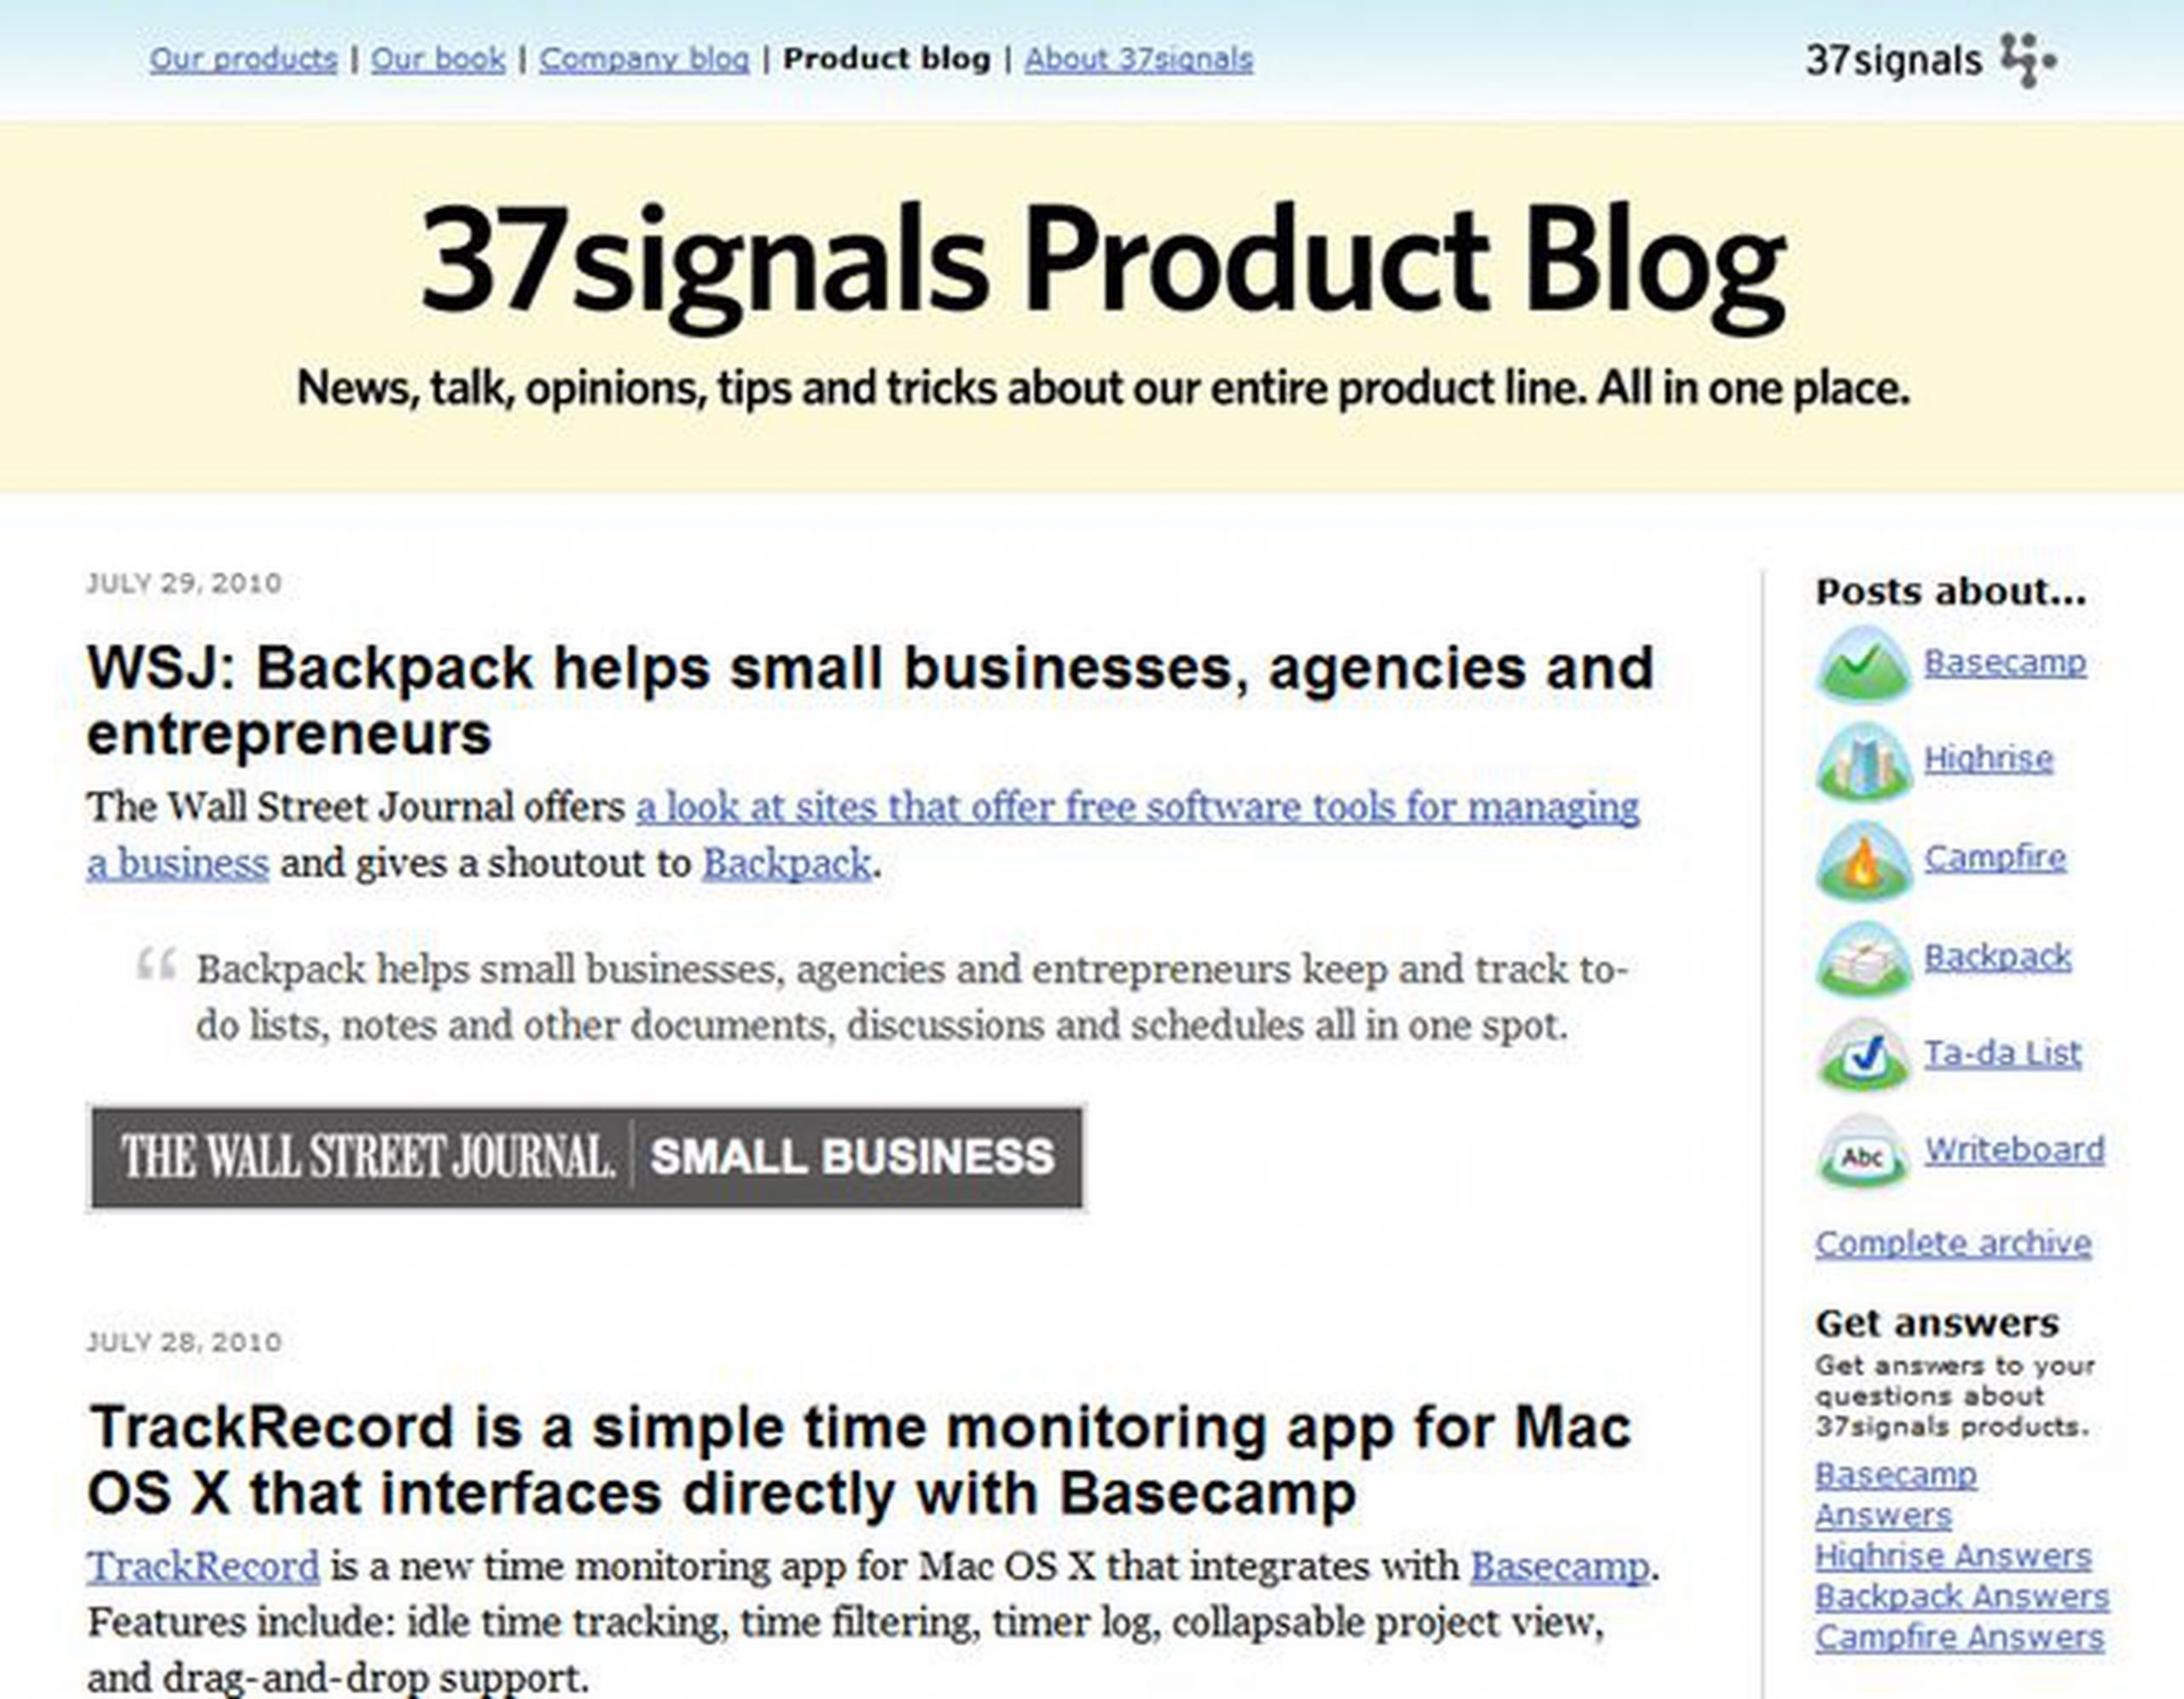 37signals Product Blog: Showcase Your Products and Services